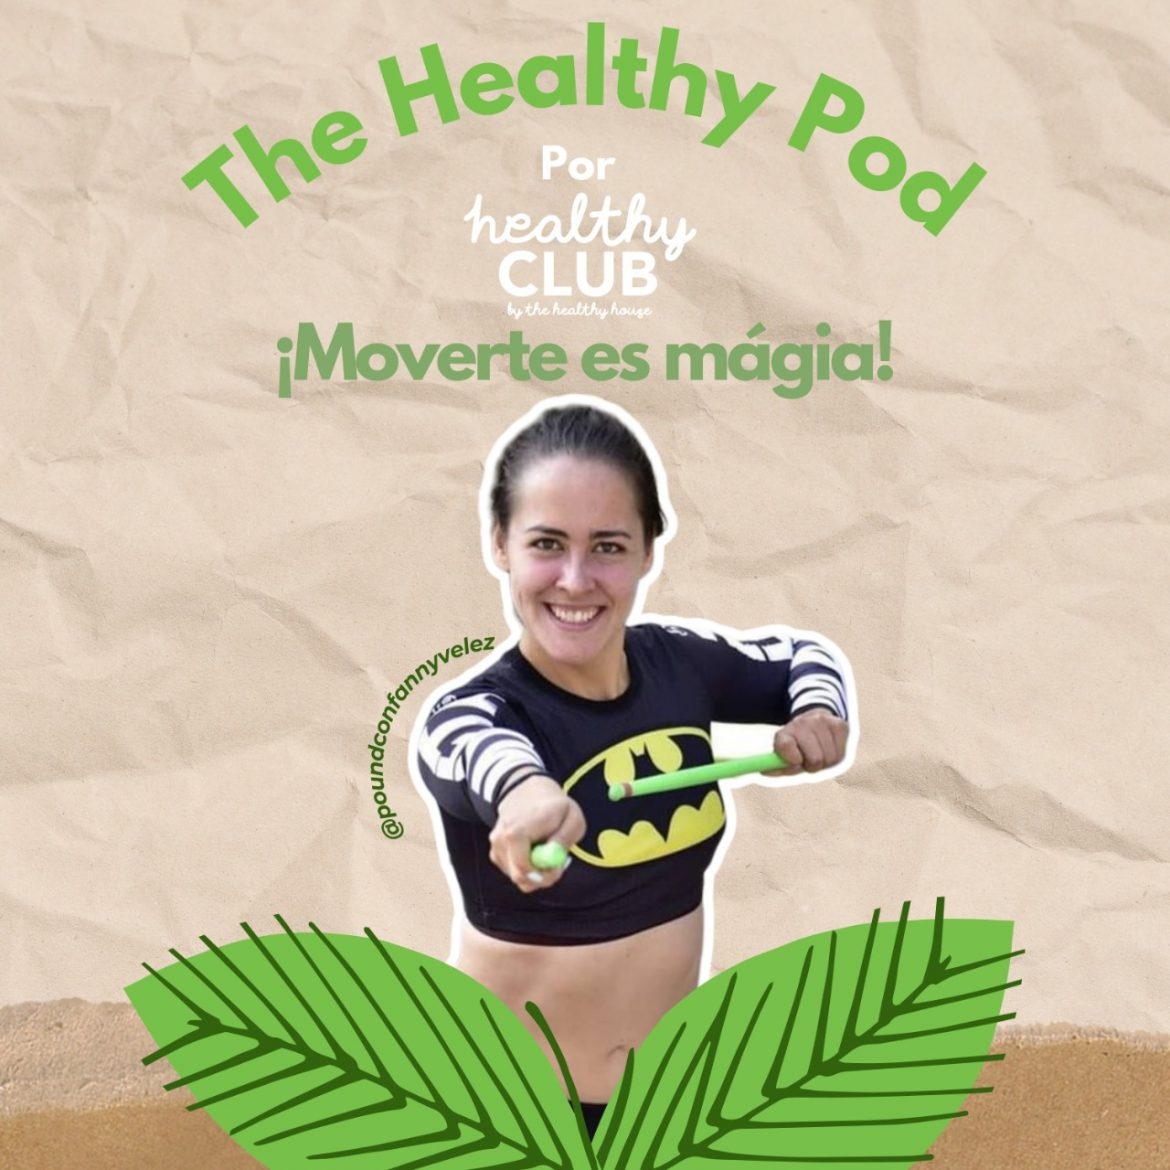 defragmx podcast the healthy pod moverse es magia